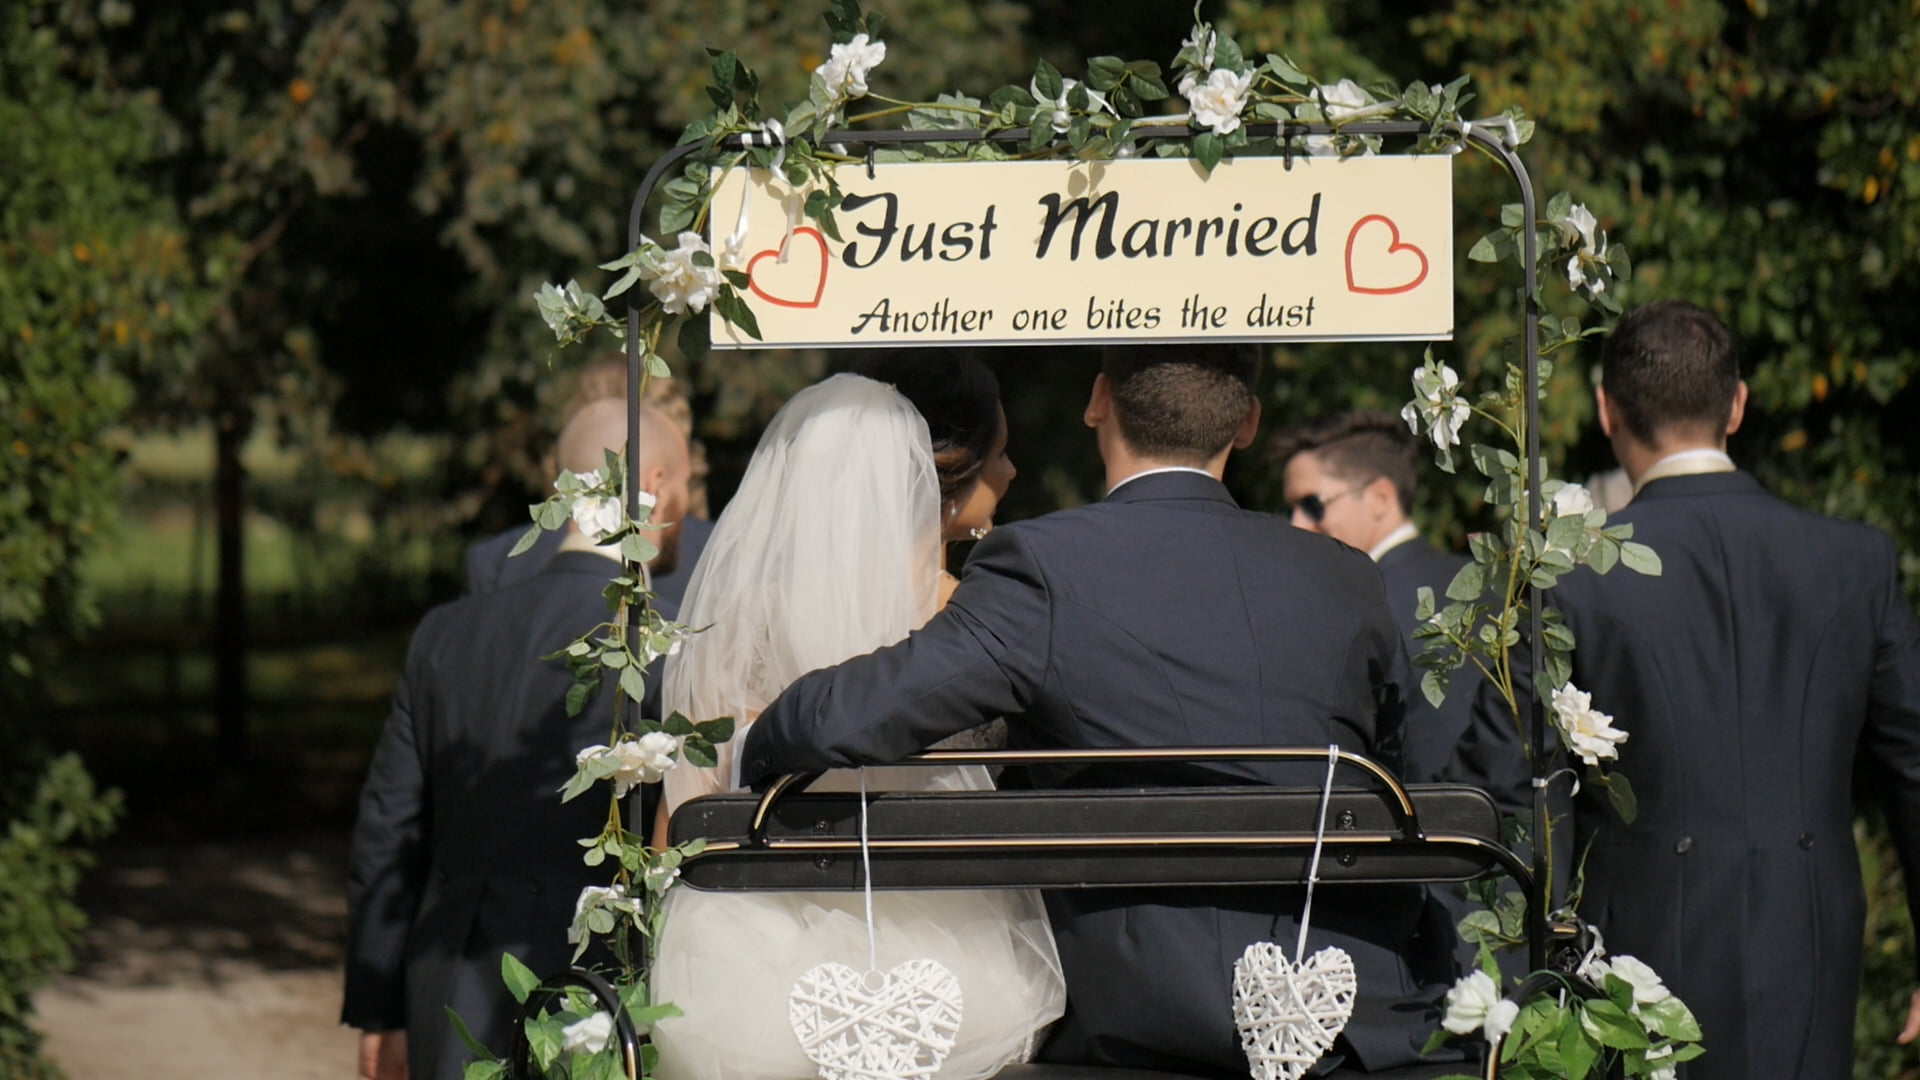 Wedding Videography - Just Married! Sign